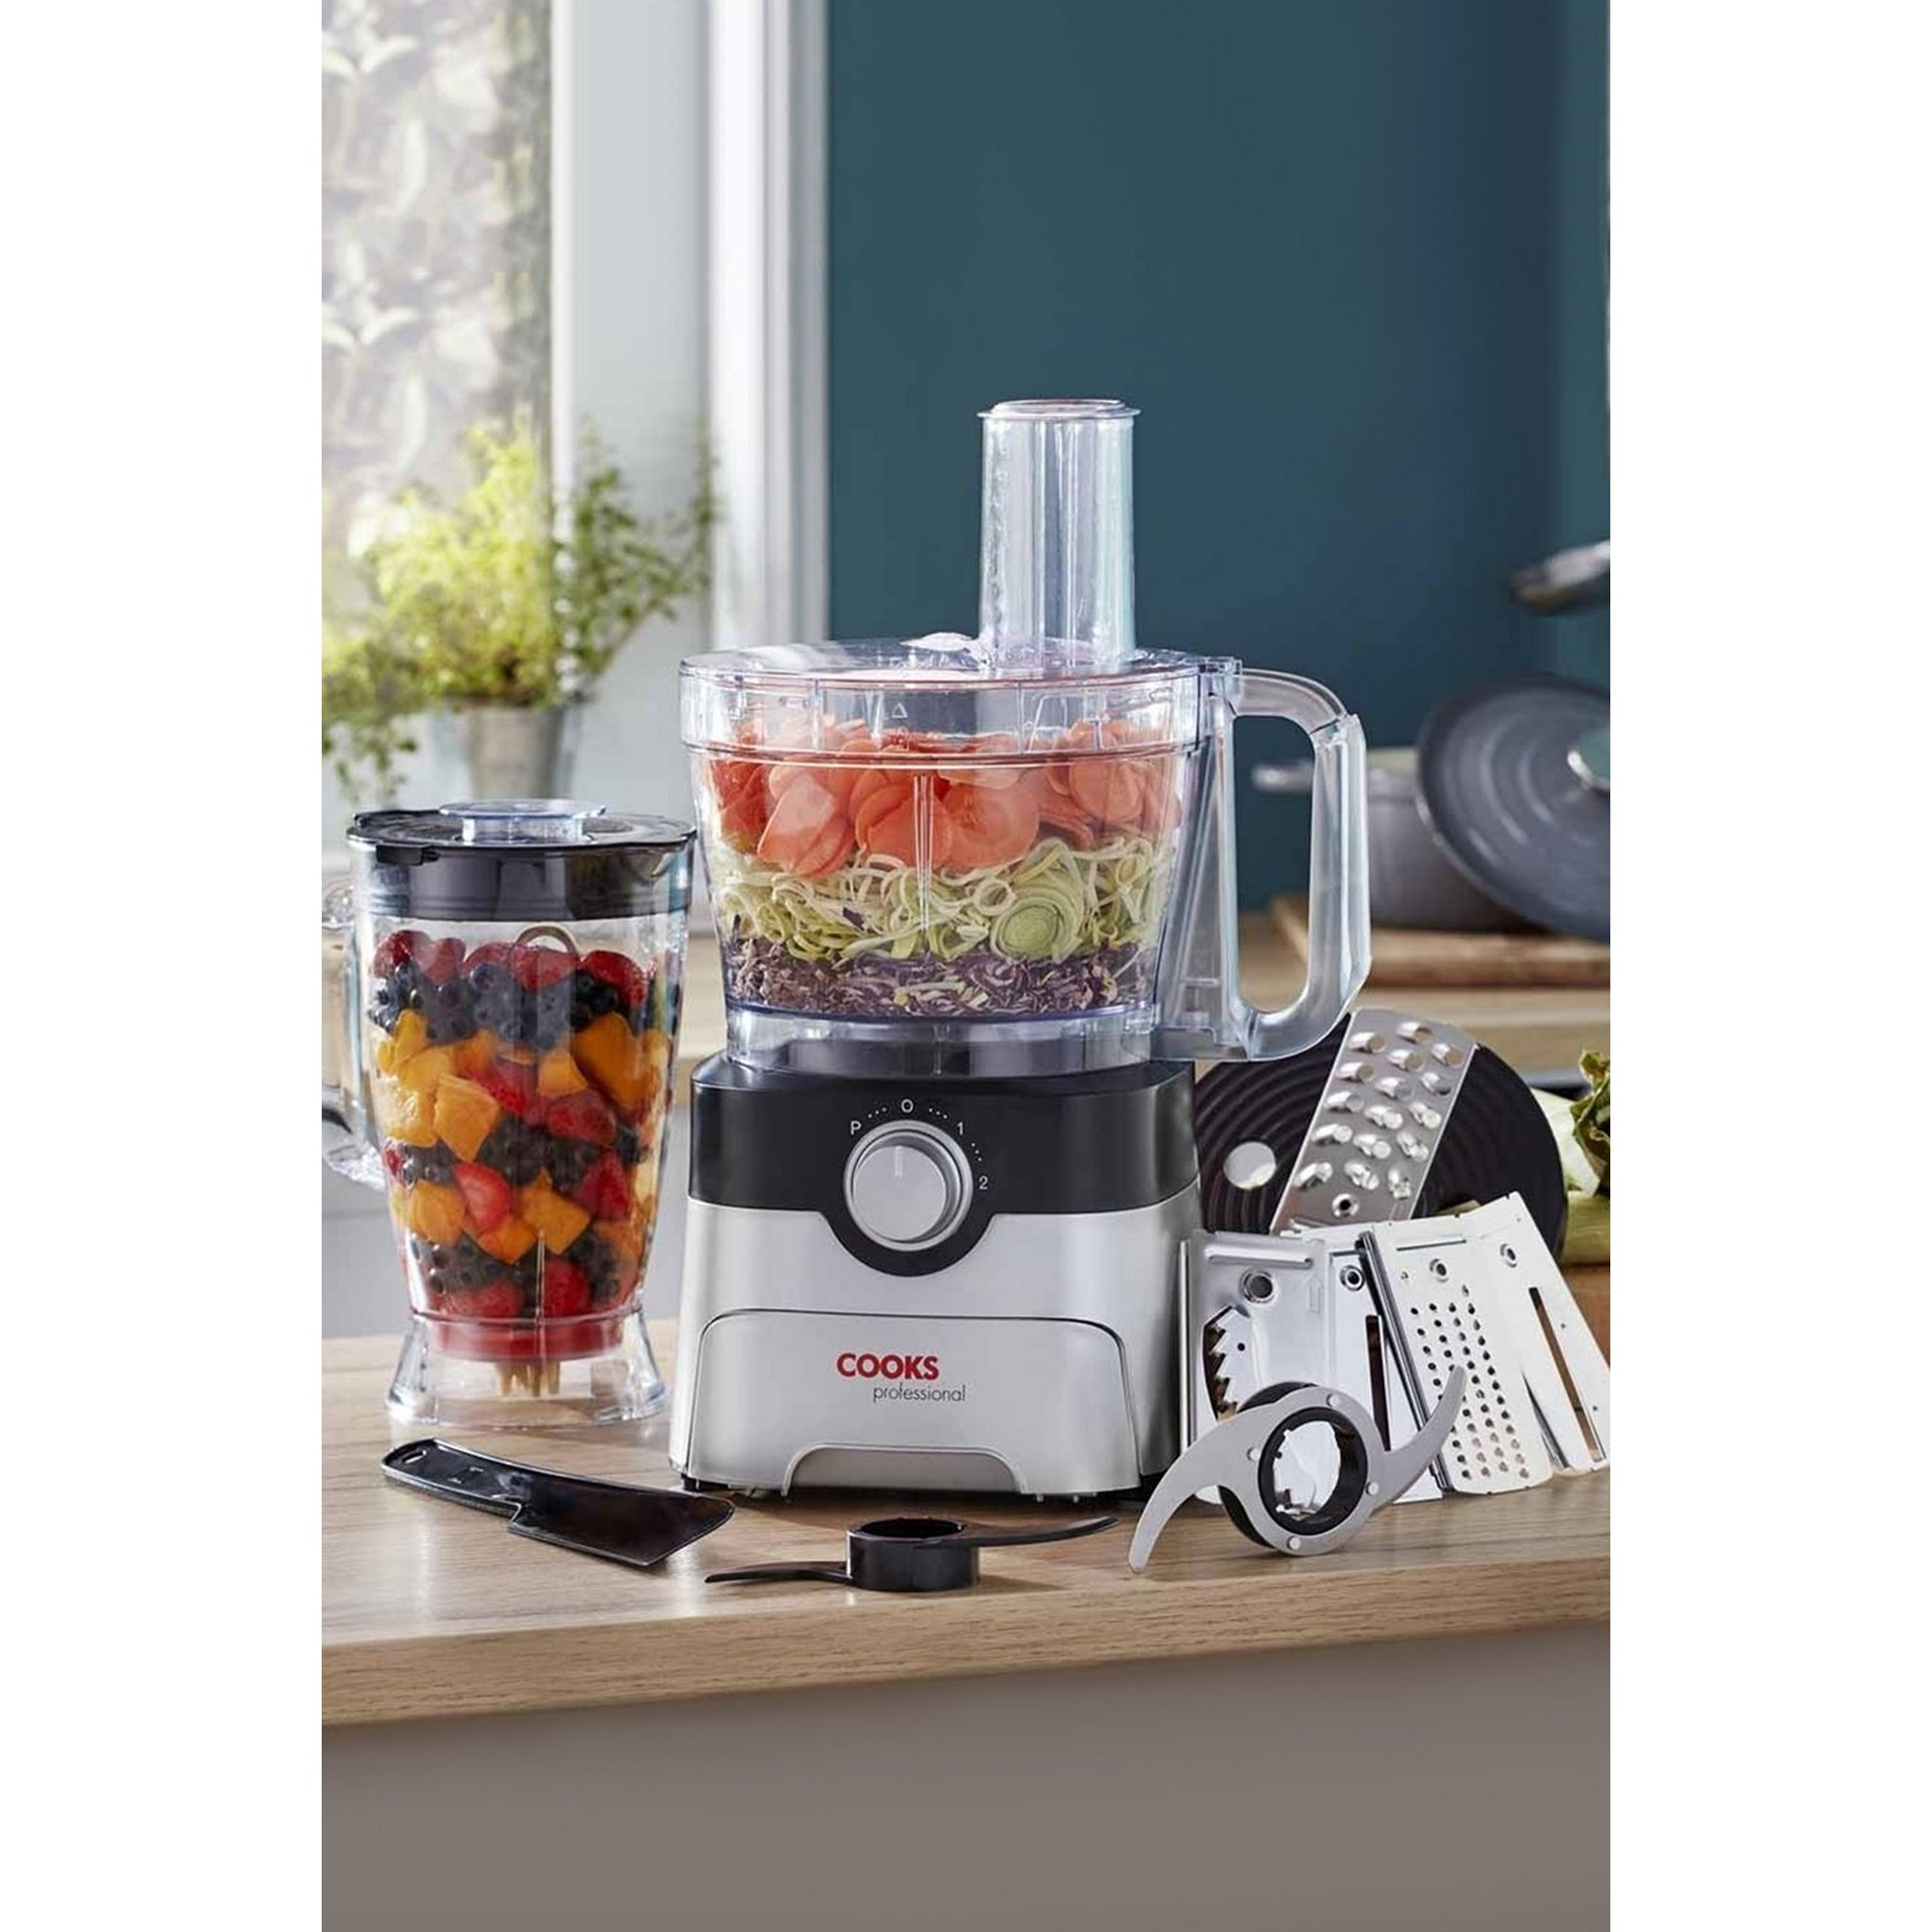 Image of Cooks Professional 1000w Food Processor